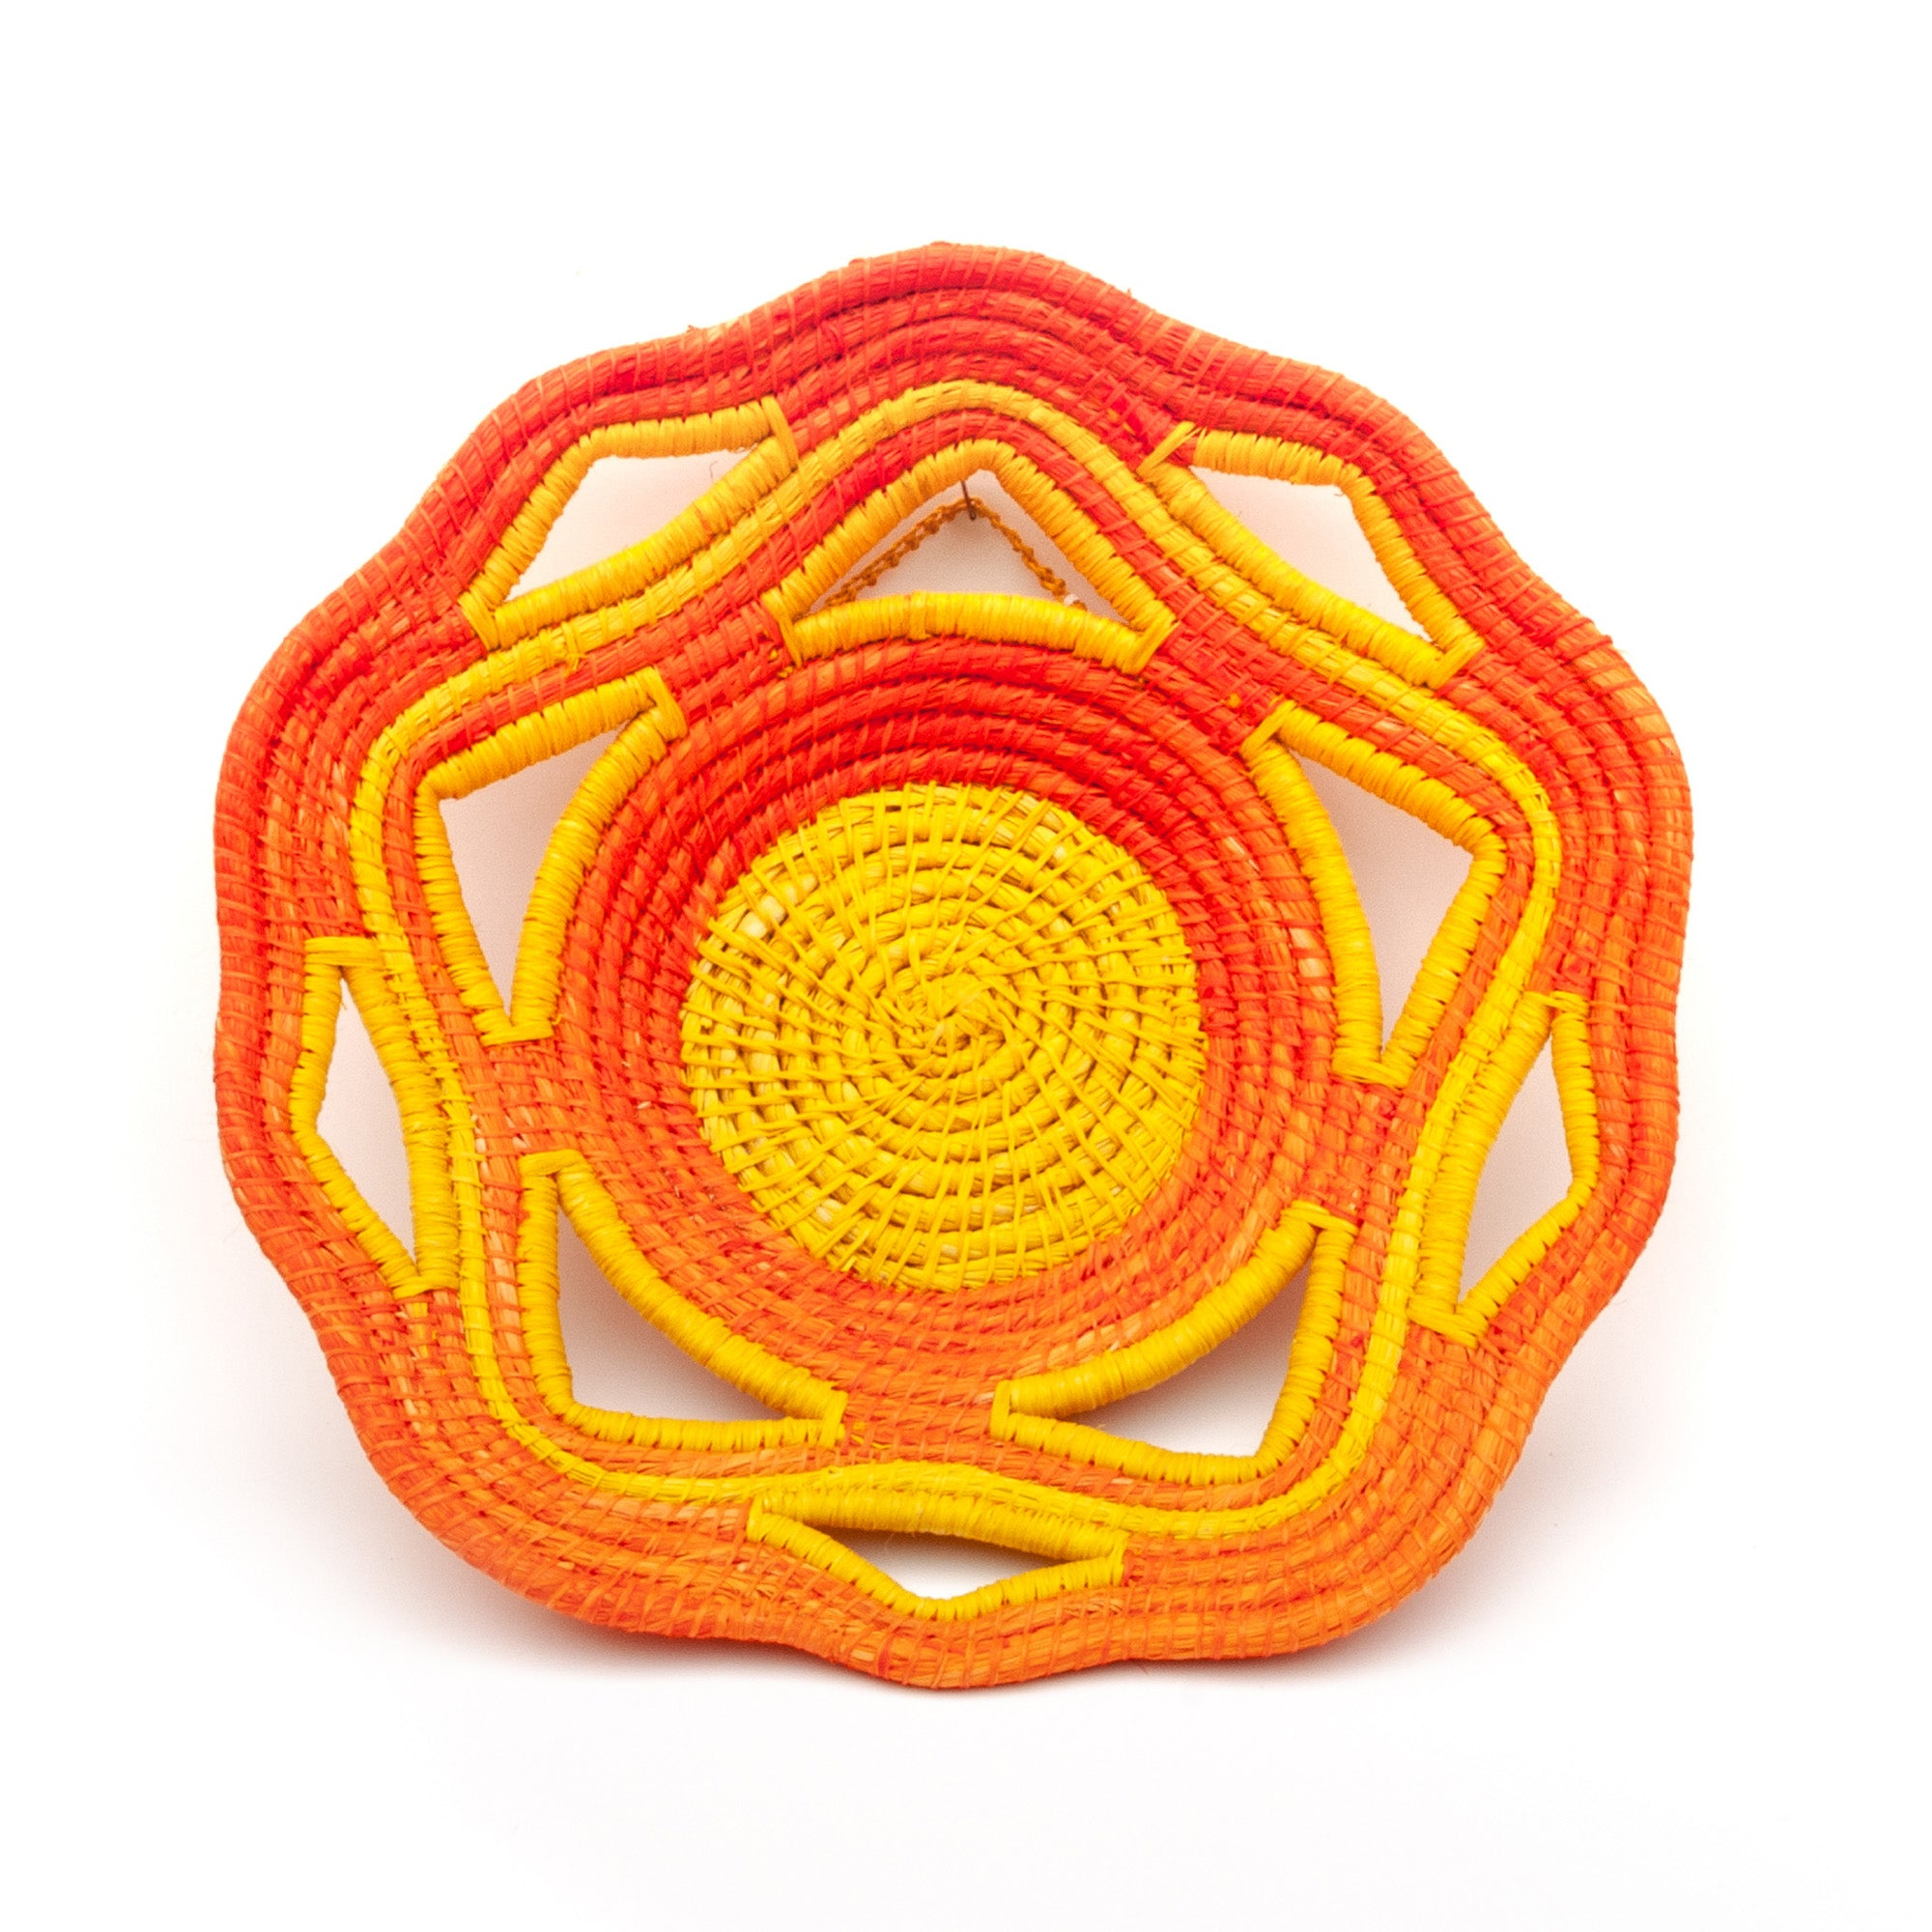 Vivid Orange and Yellow Handwoven Fair Trade Decorative Basket